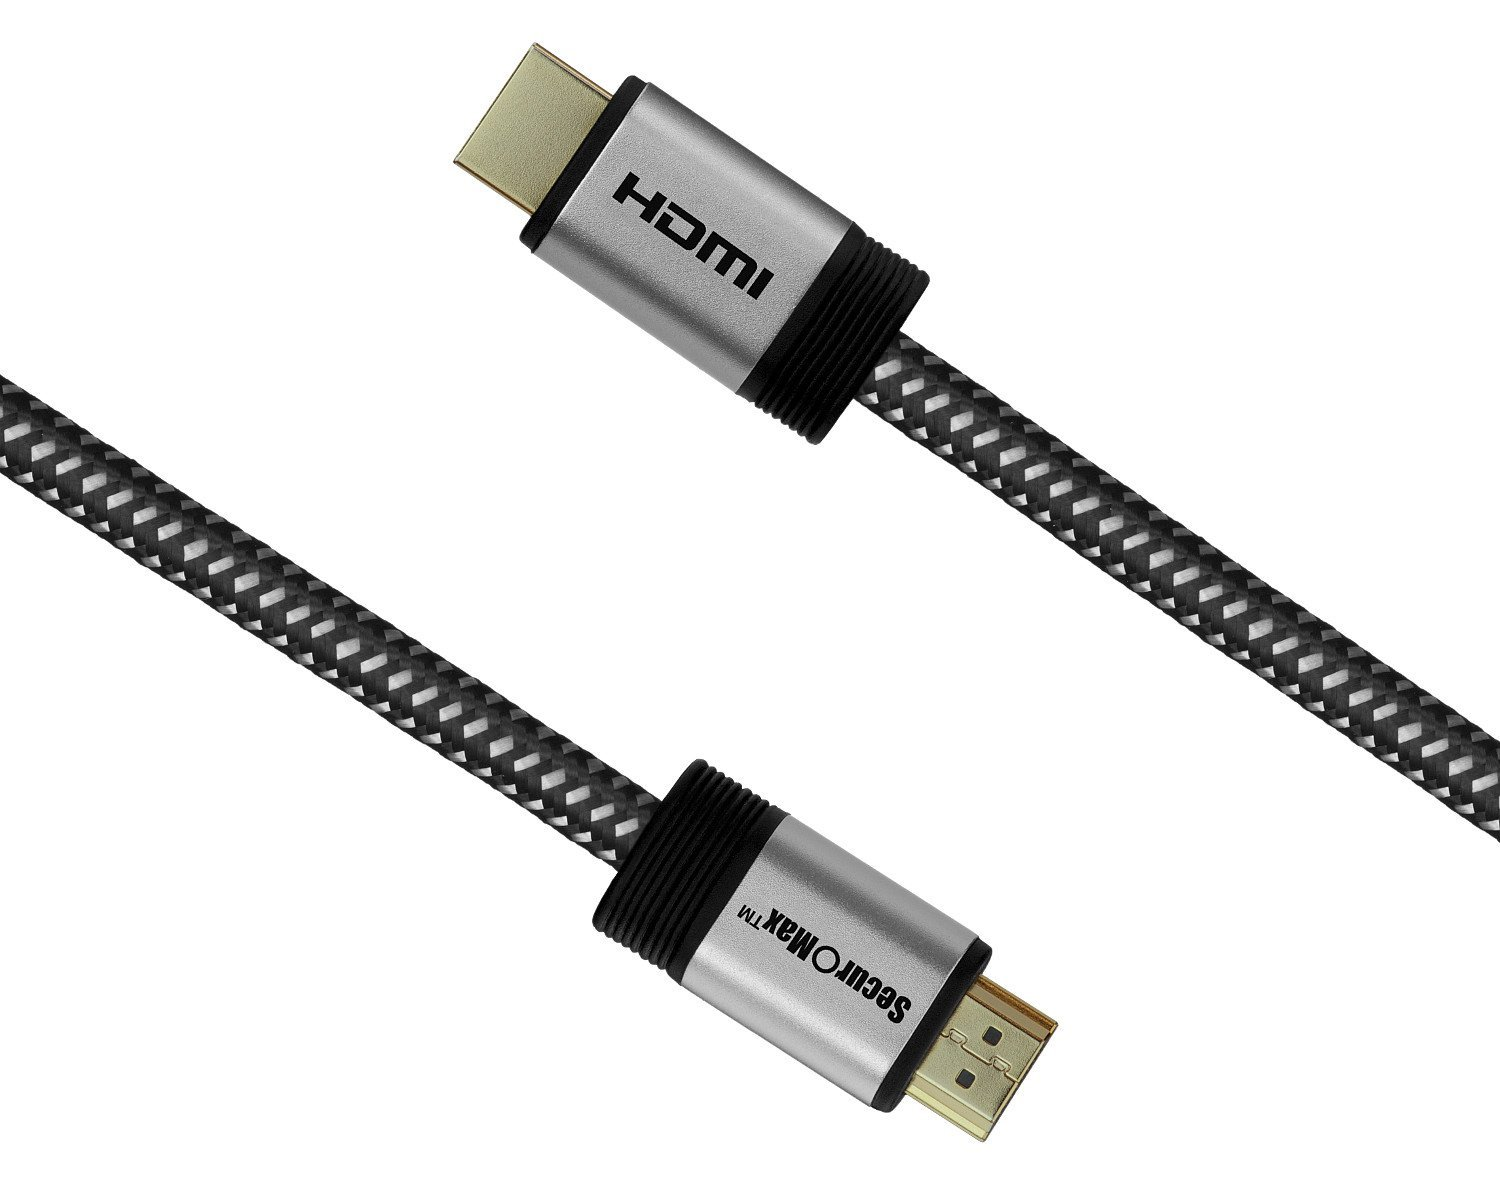 6ft High Speed Hdmi Cable With Ethernet 28awg